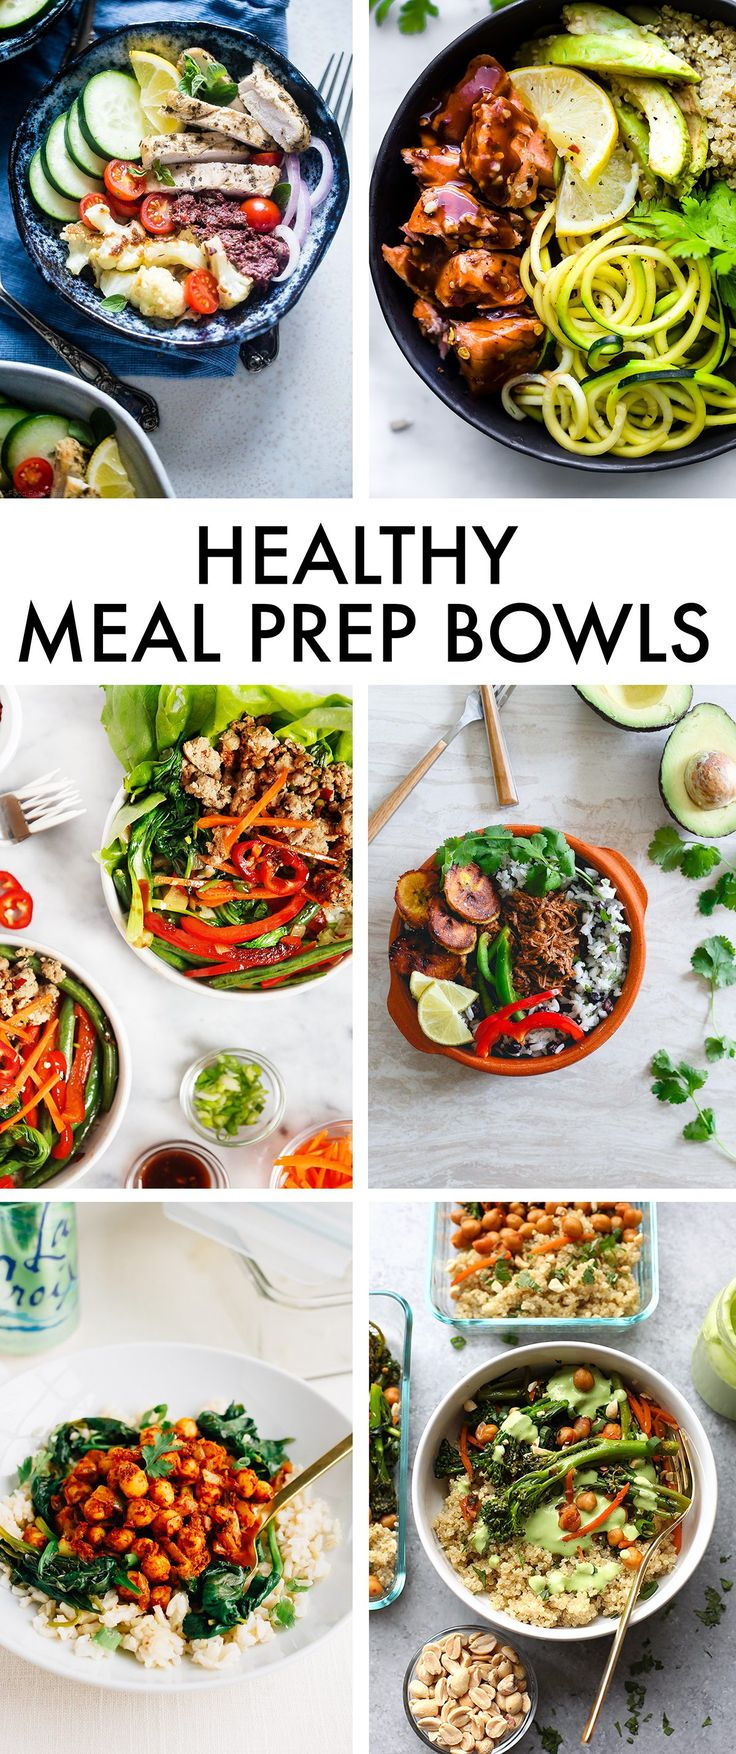 Healthy Meal Prep Bowls | Fit Foodie Finds, Running to the Kithen, Food Faith Fitness, Eating Bird Food, Cotter Crunch & Lexi's Clean Kitchen